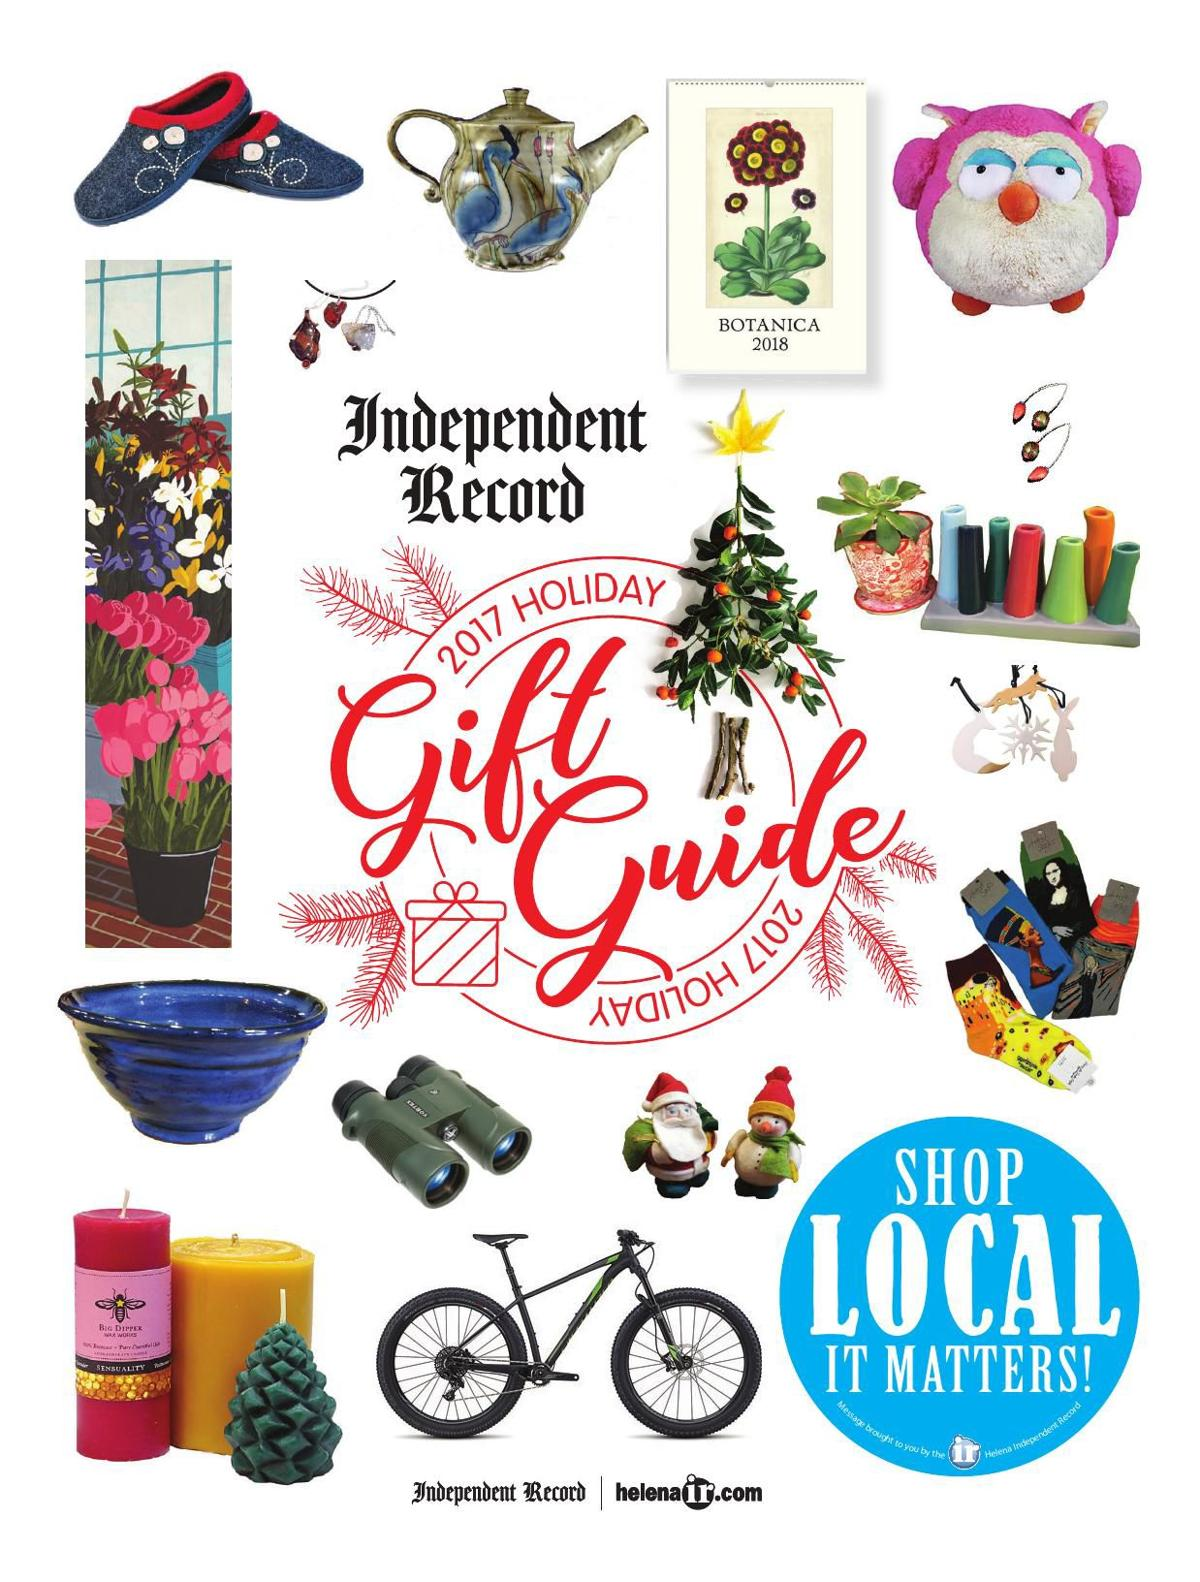 Helena 2017 holiday gift guide special sections helenair download pdf helena 2017 holiday gift guide negle Choice Image